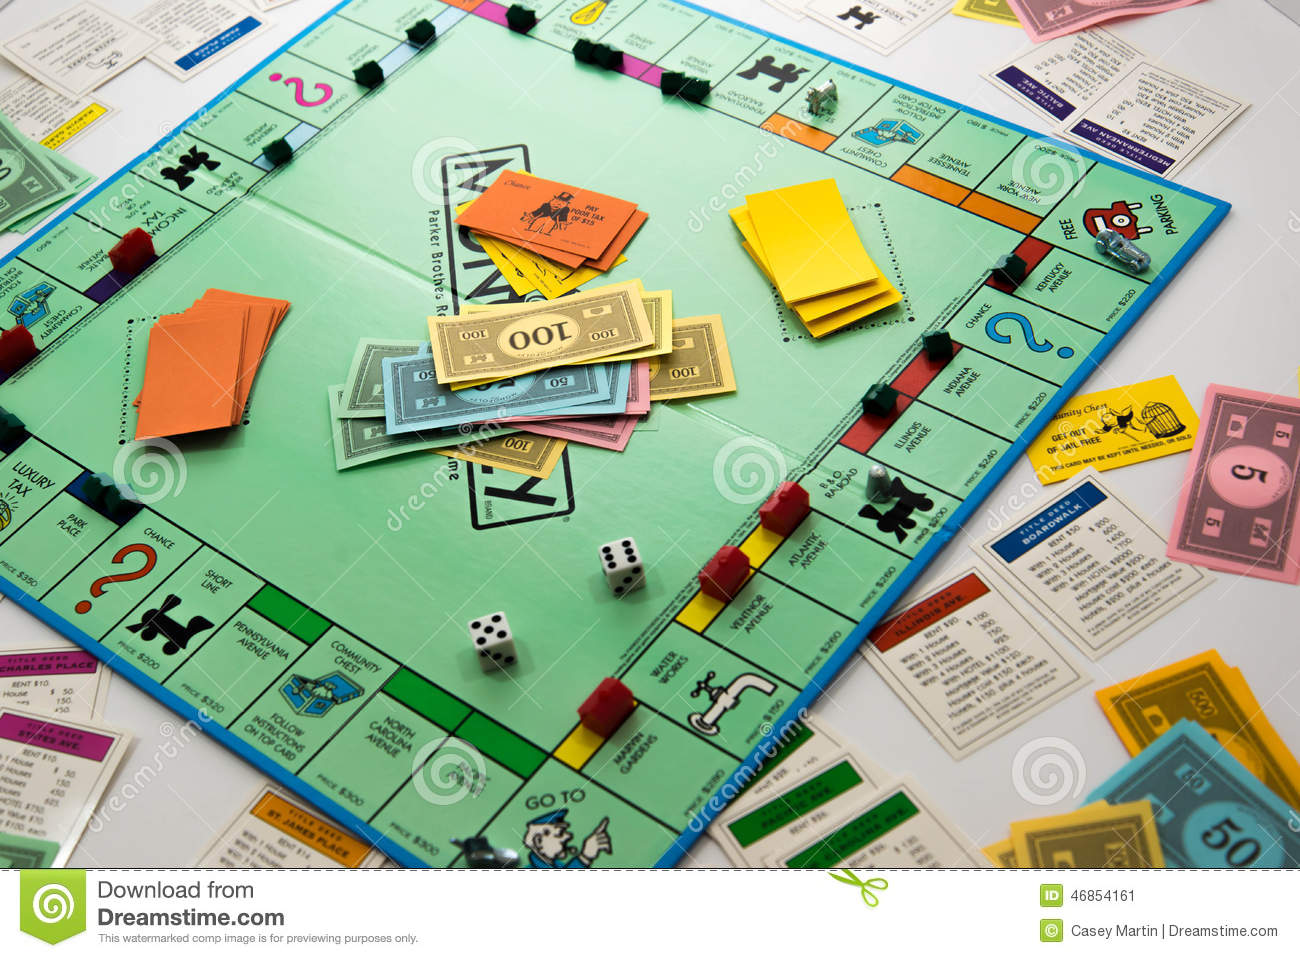 monopoly gamer all cards pdf